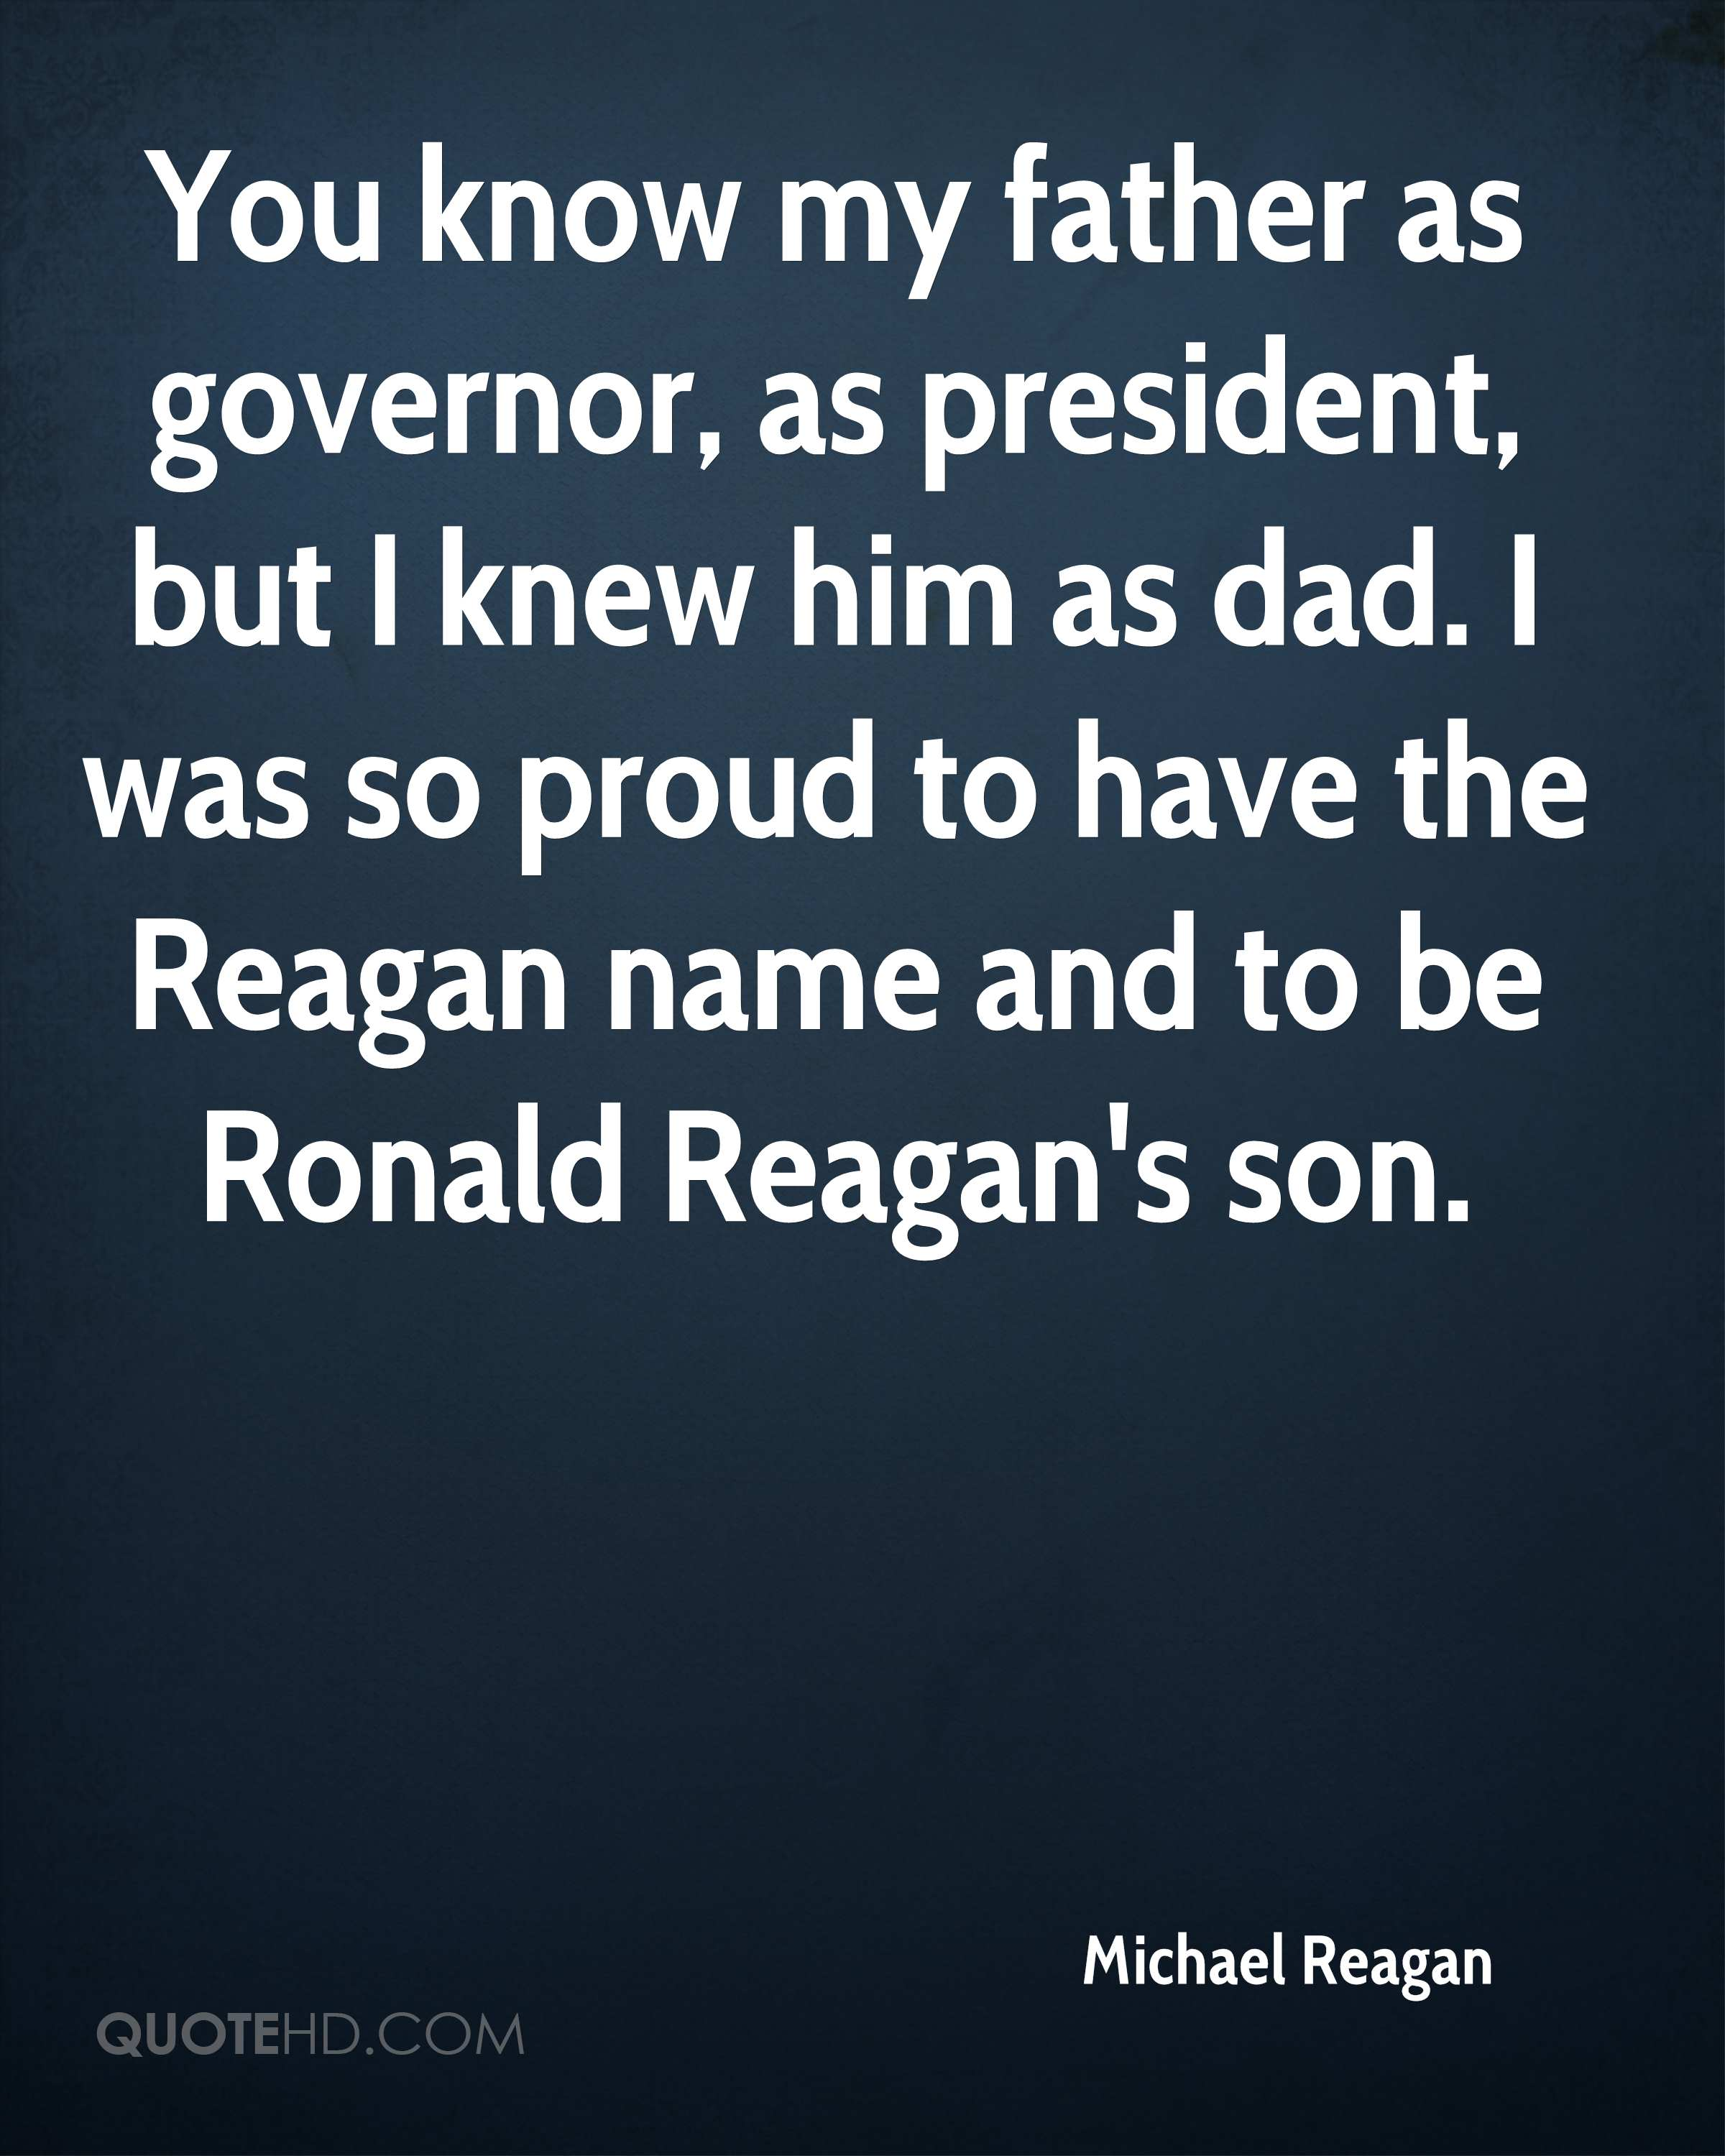 You know my father as governor, as president, but I knew him as dad. I was so proud to have the Reagan name and to be Ronald Reagan's son.